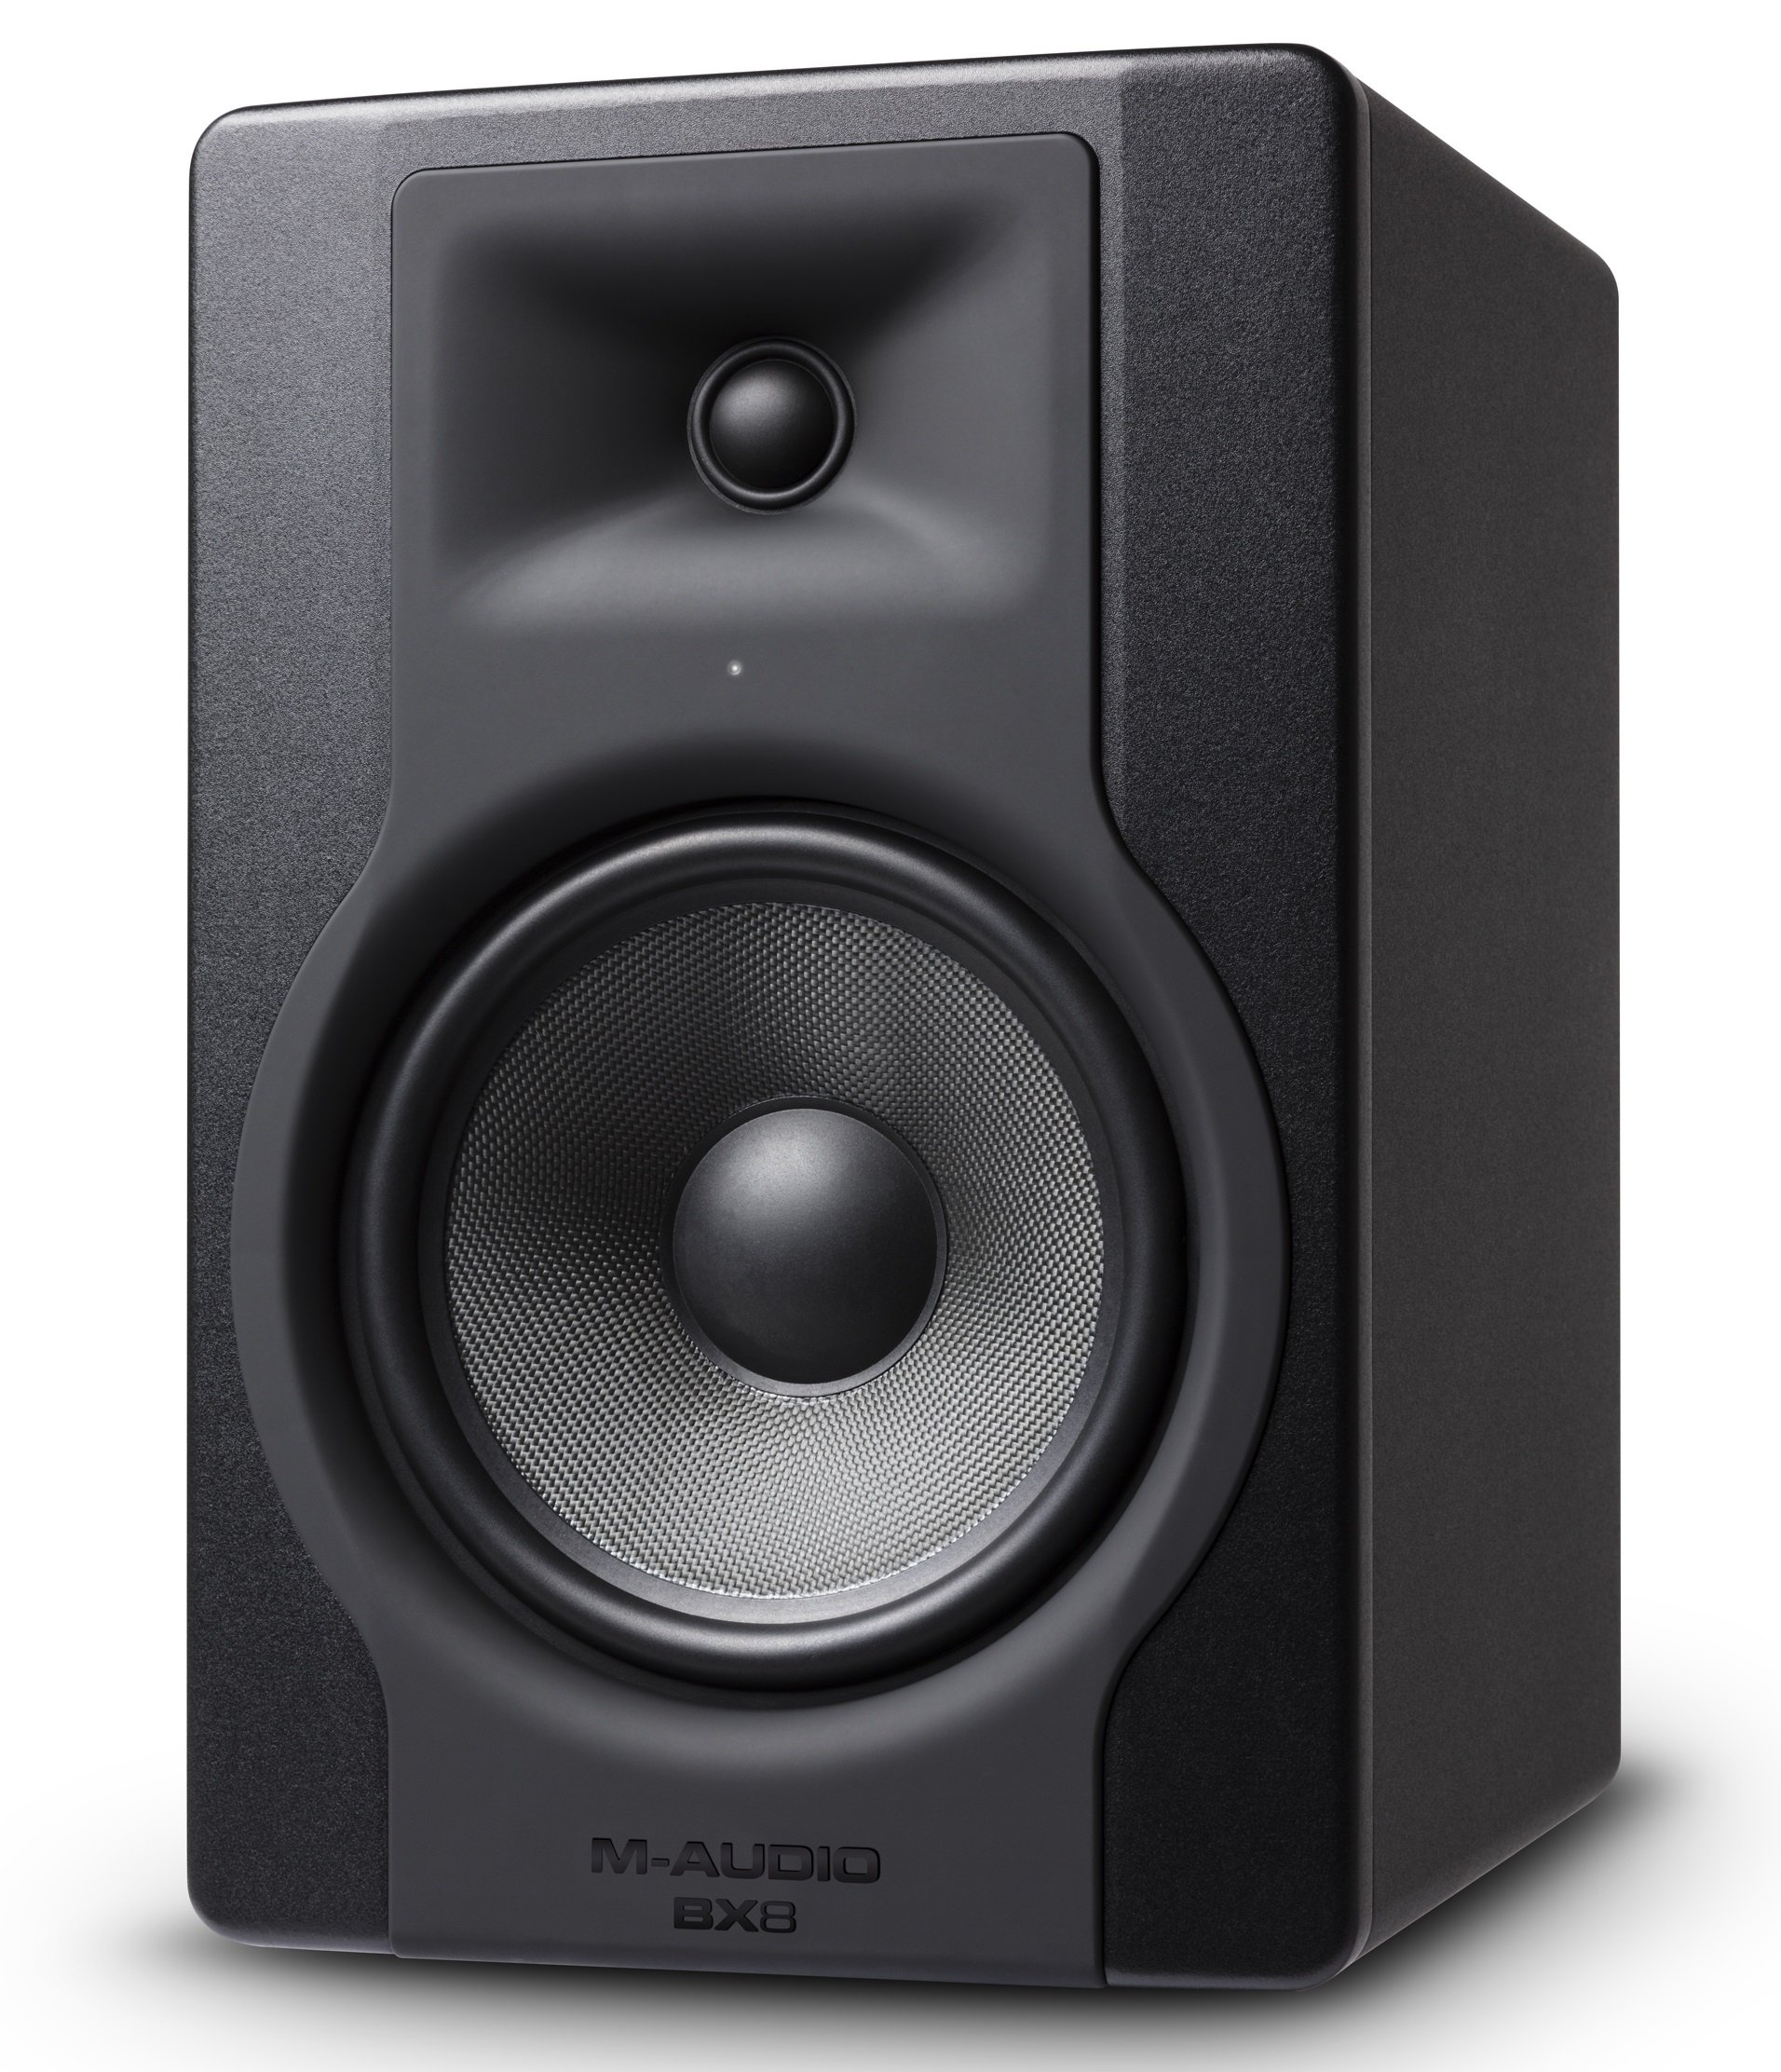 M-Audio BX8 D3 | Professional 2-Way 8'' Active Studio Monitor Speakers for Music Production and Mixing, With Onboard Acoustic Space Control